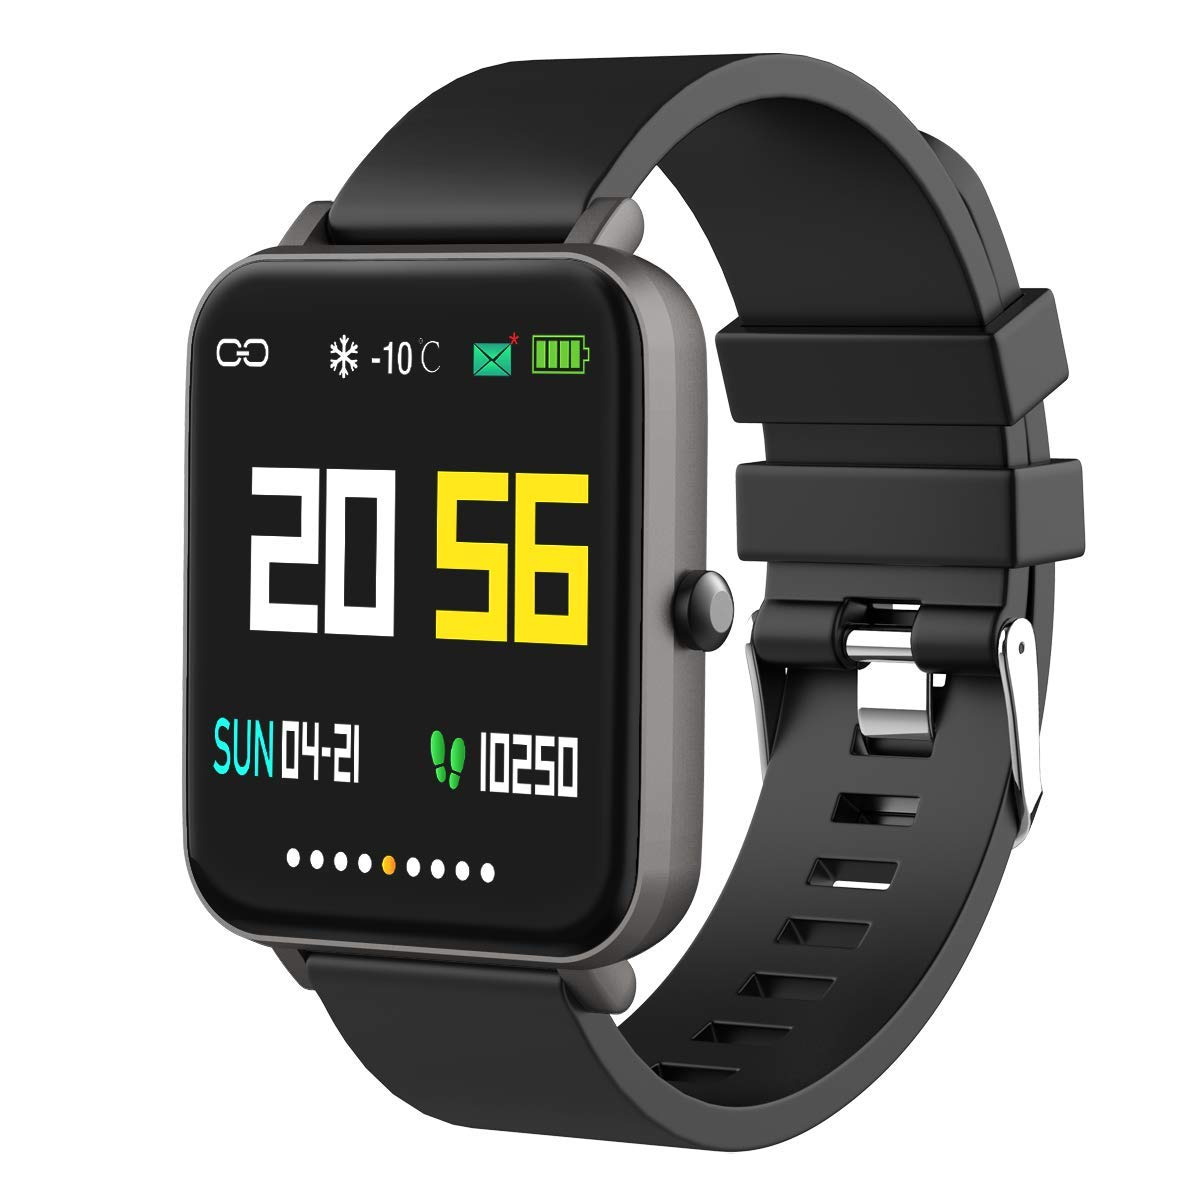 Foronechi Smart Watch for Android/Samsung/iPhone, Activity Fitness Tracker with IP68 Waterproof for Men Women & Kids, Smartwatch with 1.54'' Full-Touch Color Screen, Heart Rate & Sleep Monitor by Foronechi